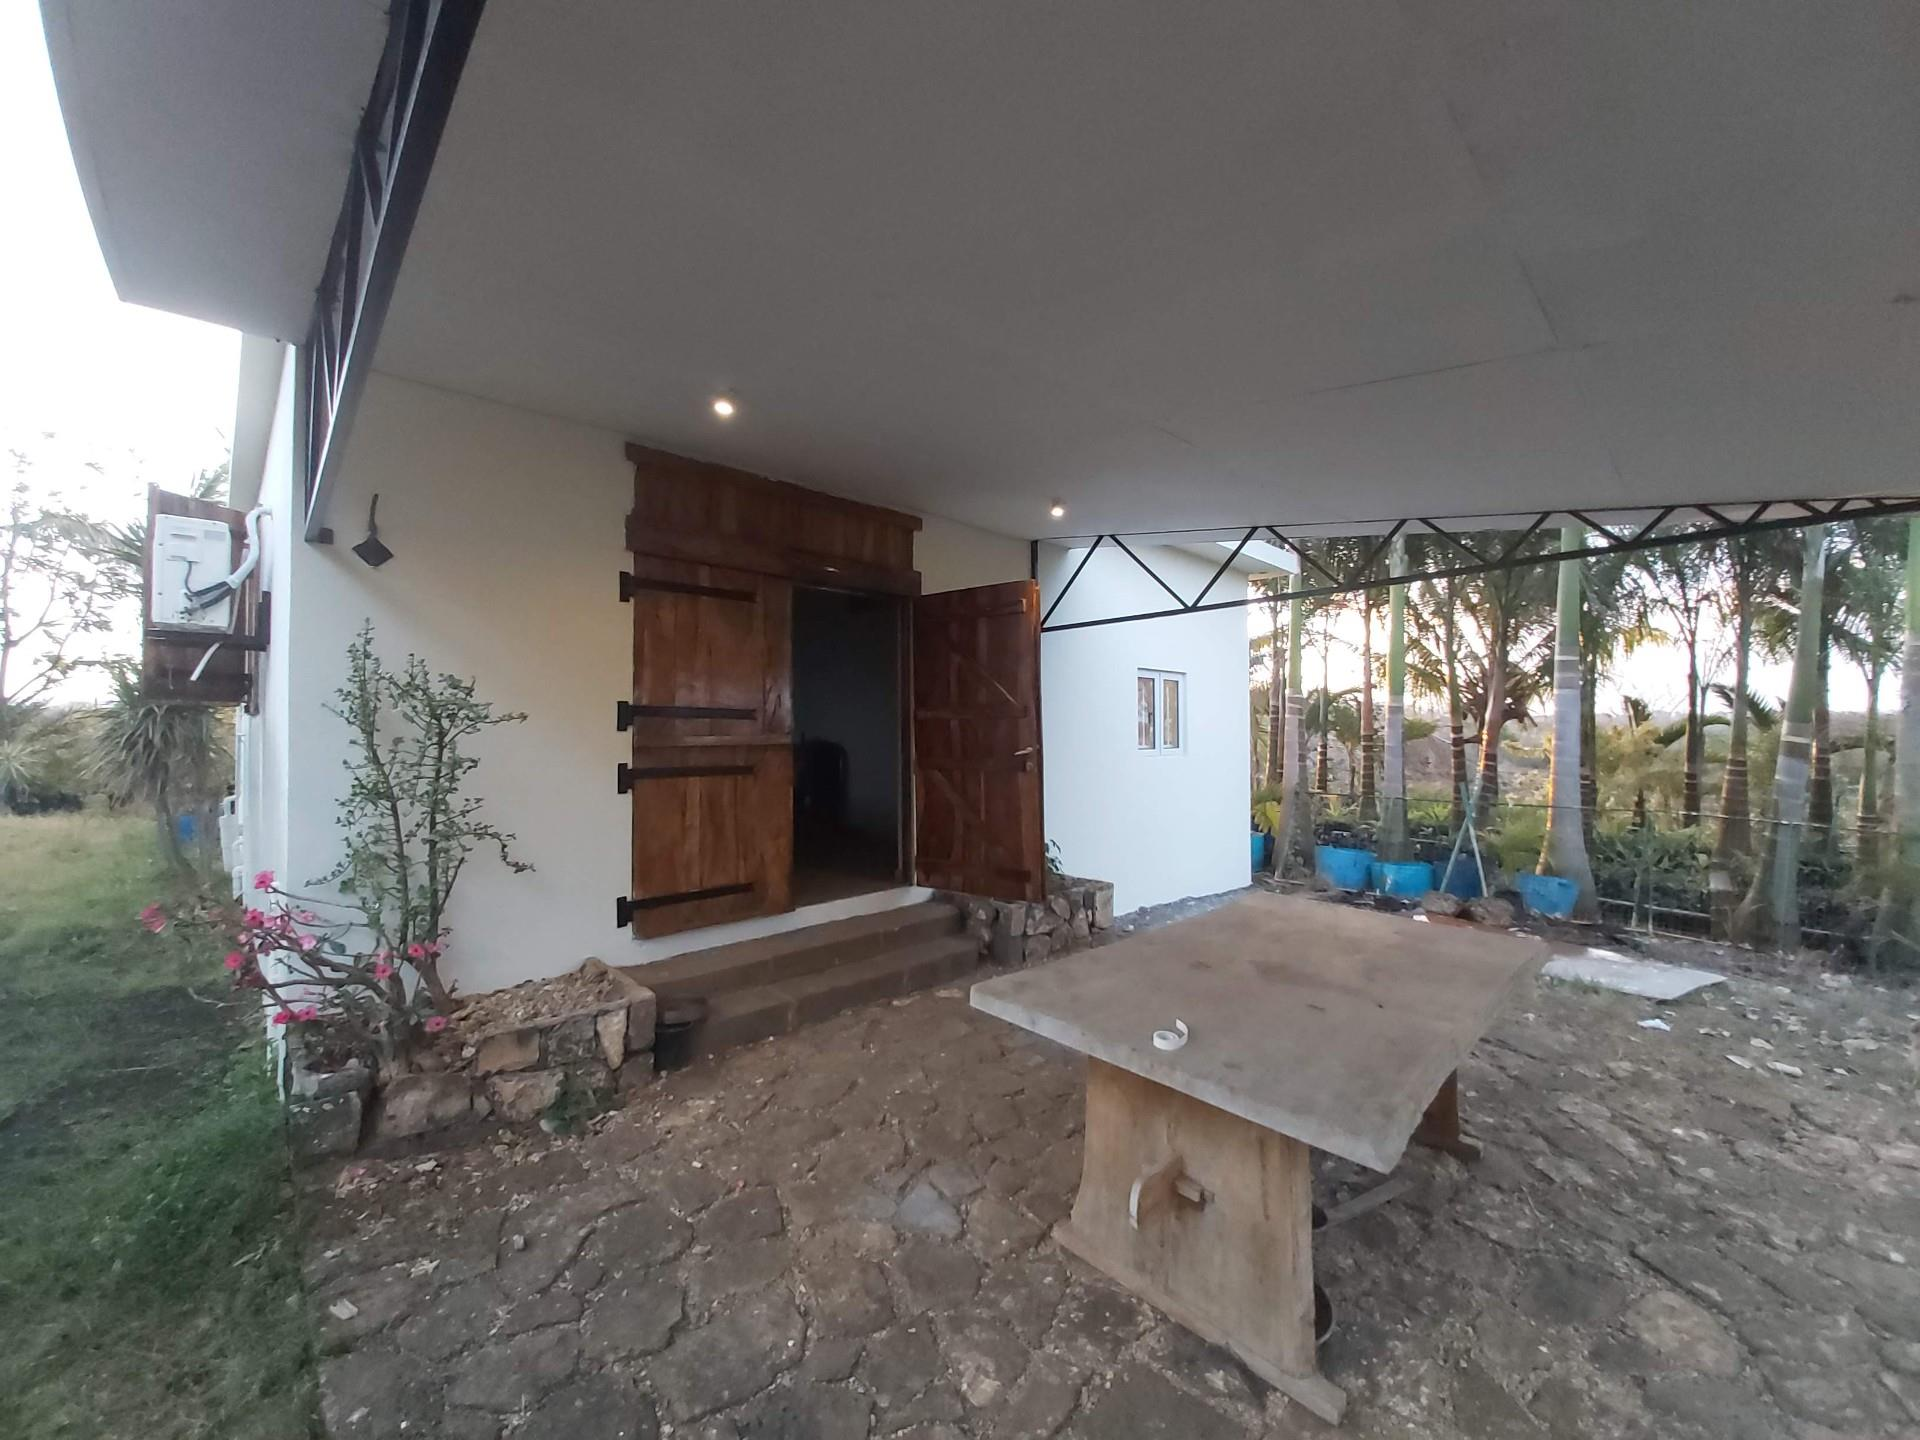 1 Bedroom House For Sale in Poudre D'or